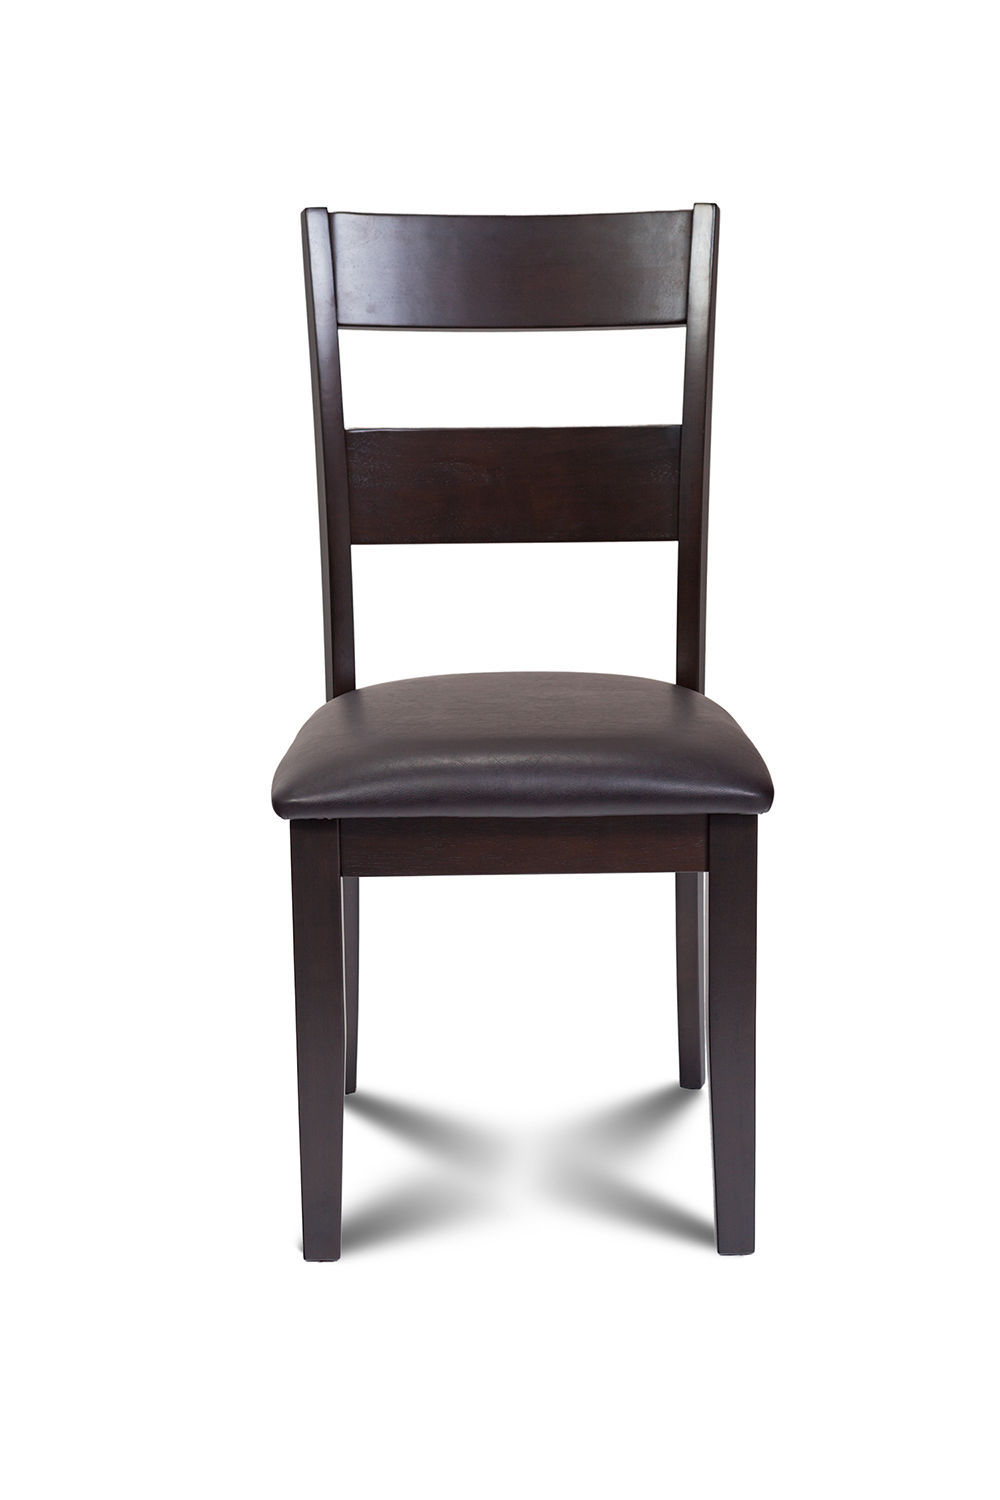 SET OF 4 KITCHEN DINING SIDE CHAIRS w/. FAUX LEATHER SEAT IN CAPPUCCINO